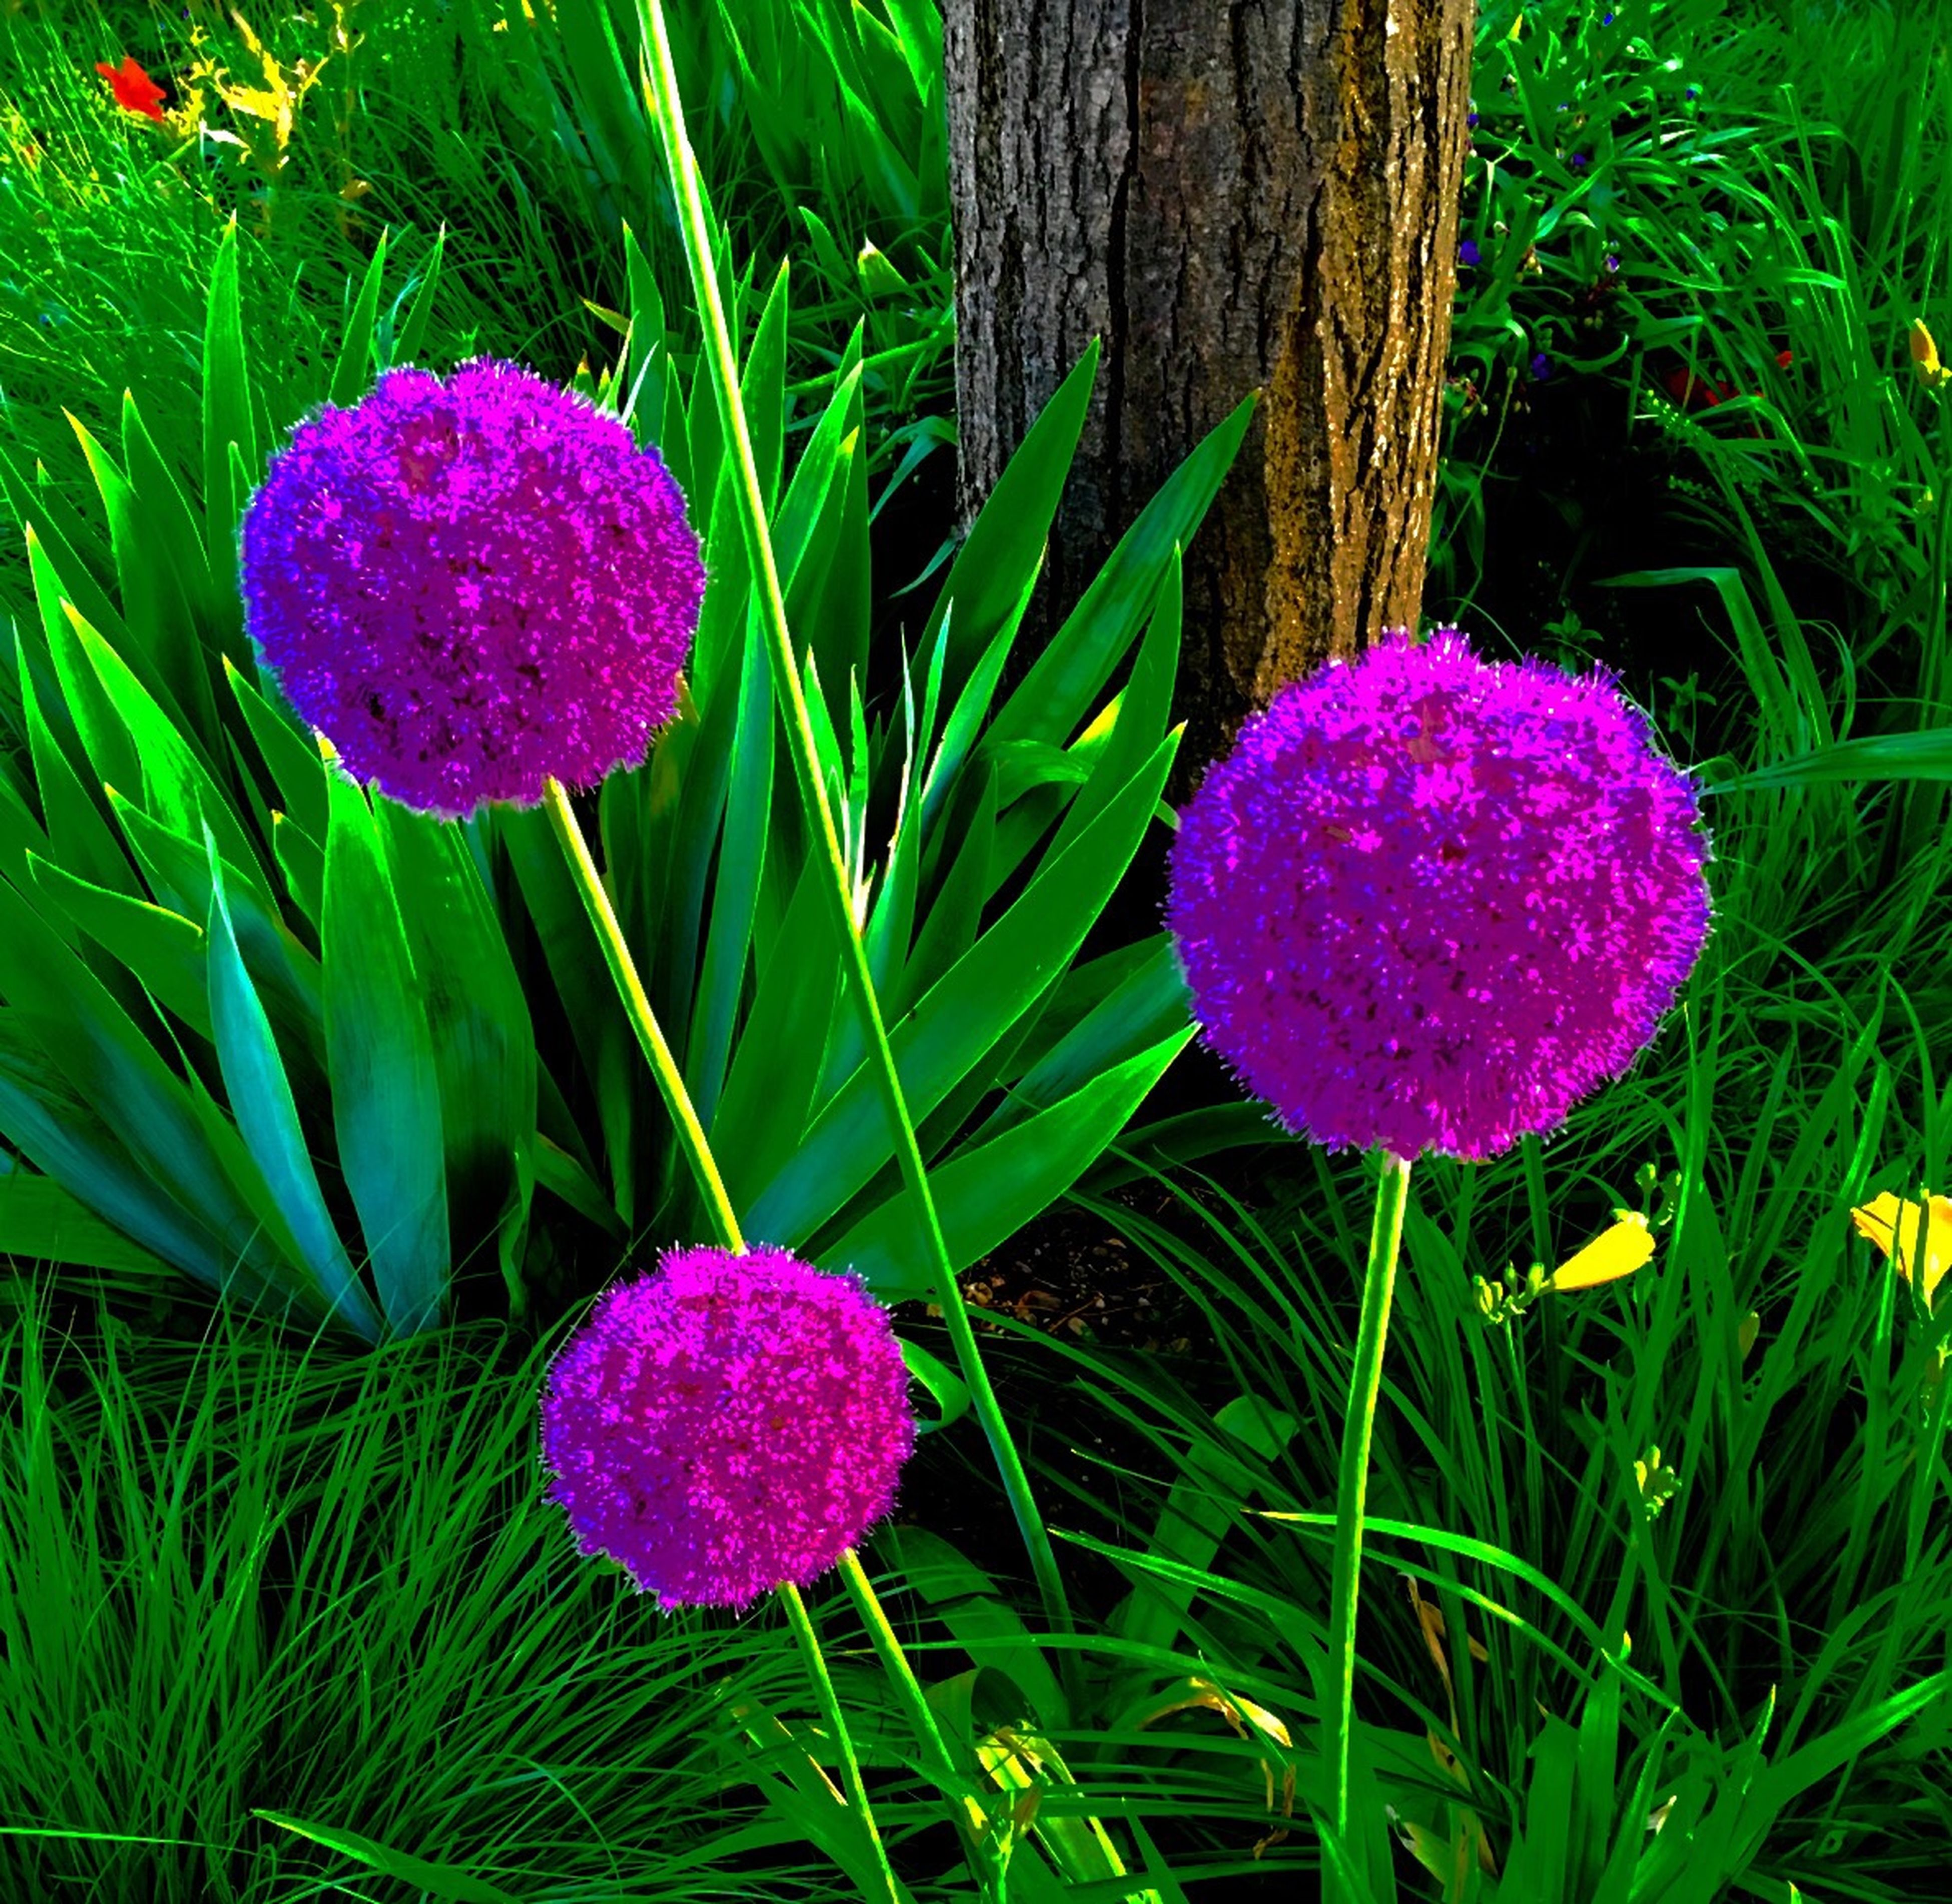 flower, growth, freshness, fragility, beauty in nature, purple, pink color, nature, petal, plant, flower head, close-up, field, blooming, in bloom, grass, green color, springtime, focus on foreground, blossom